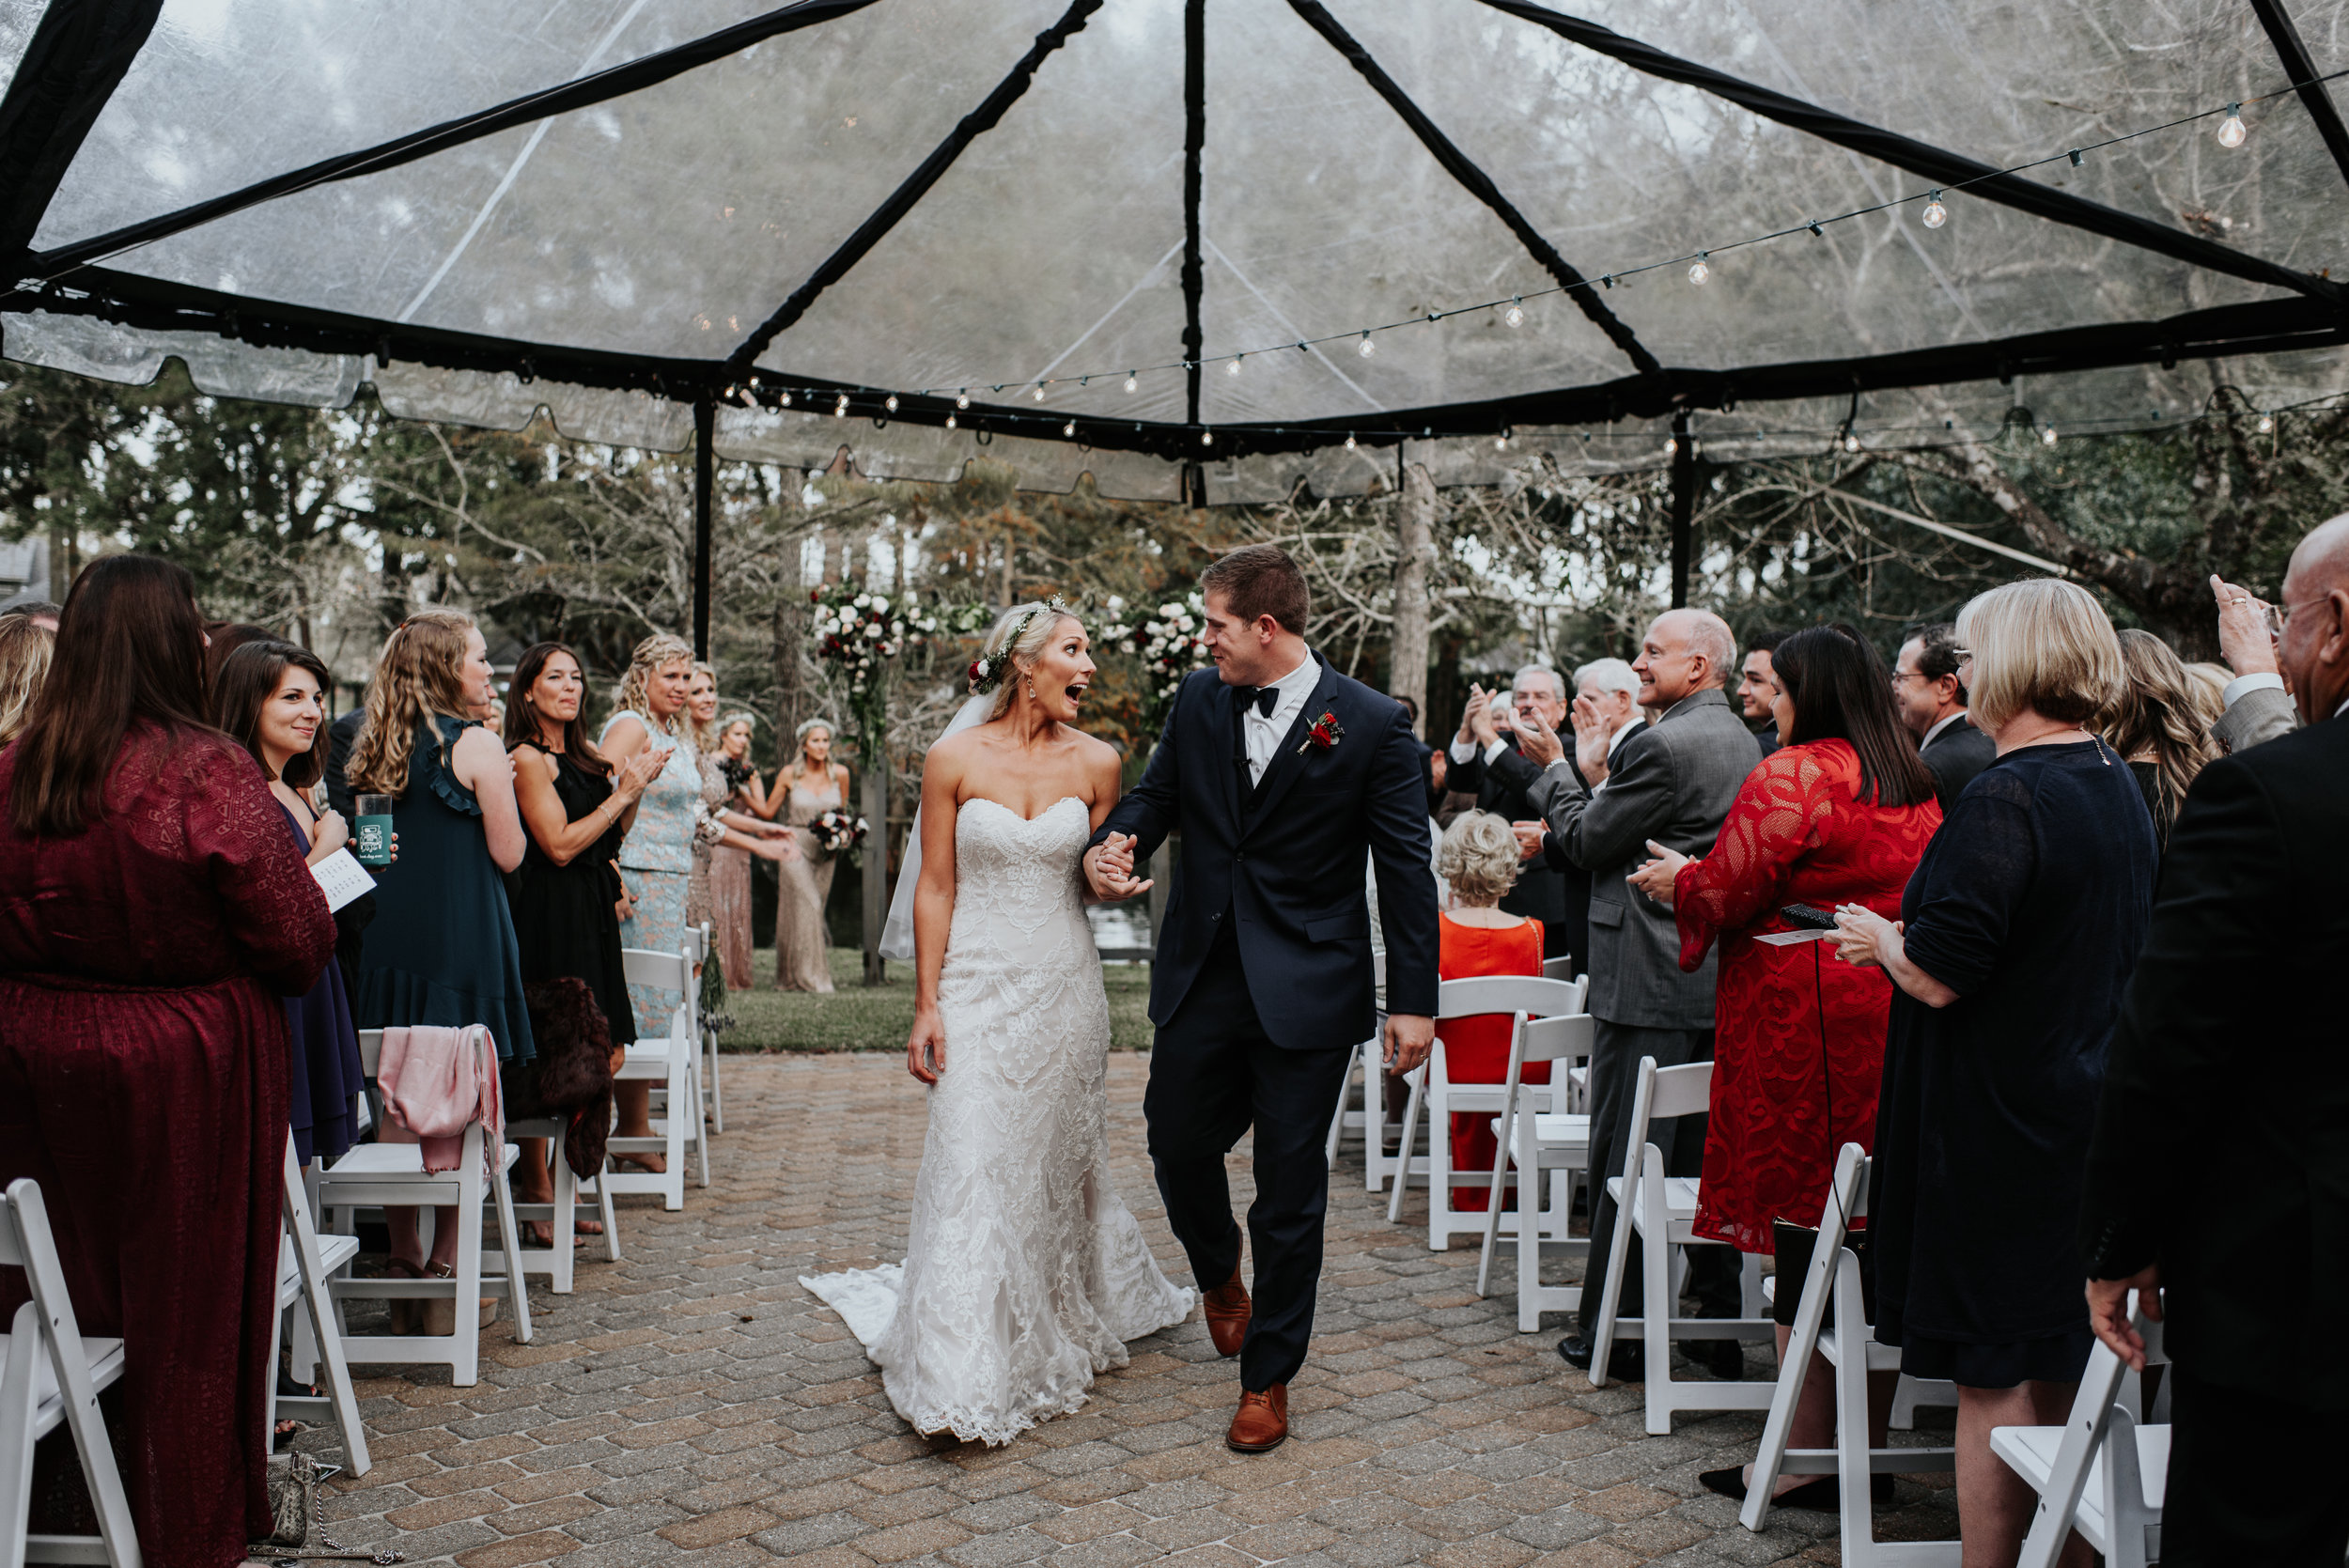 Southern Fete, Southern Wedding, Tent Wedding, Bride and Groom, Hannah Mulligan Photography